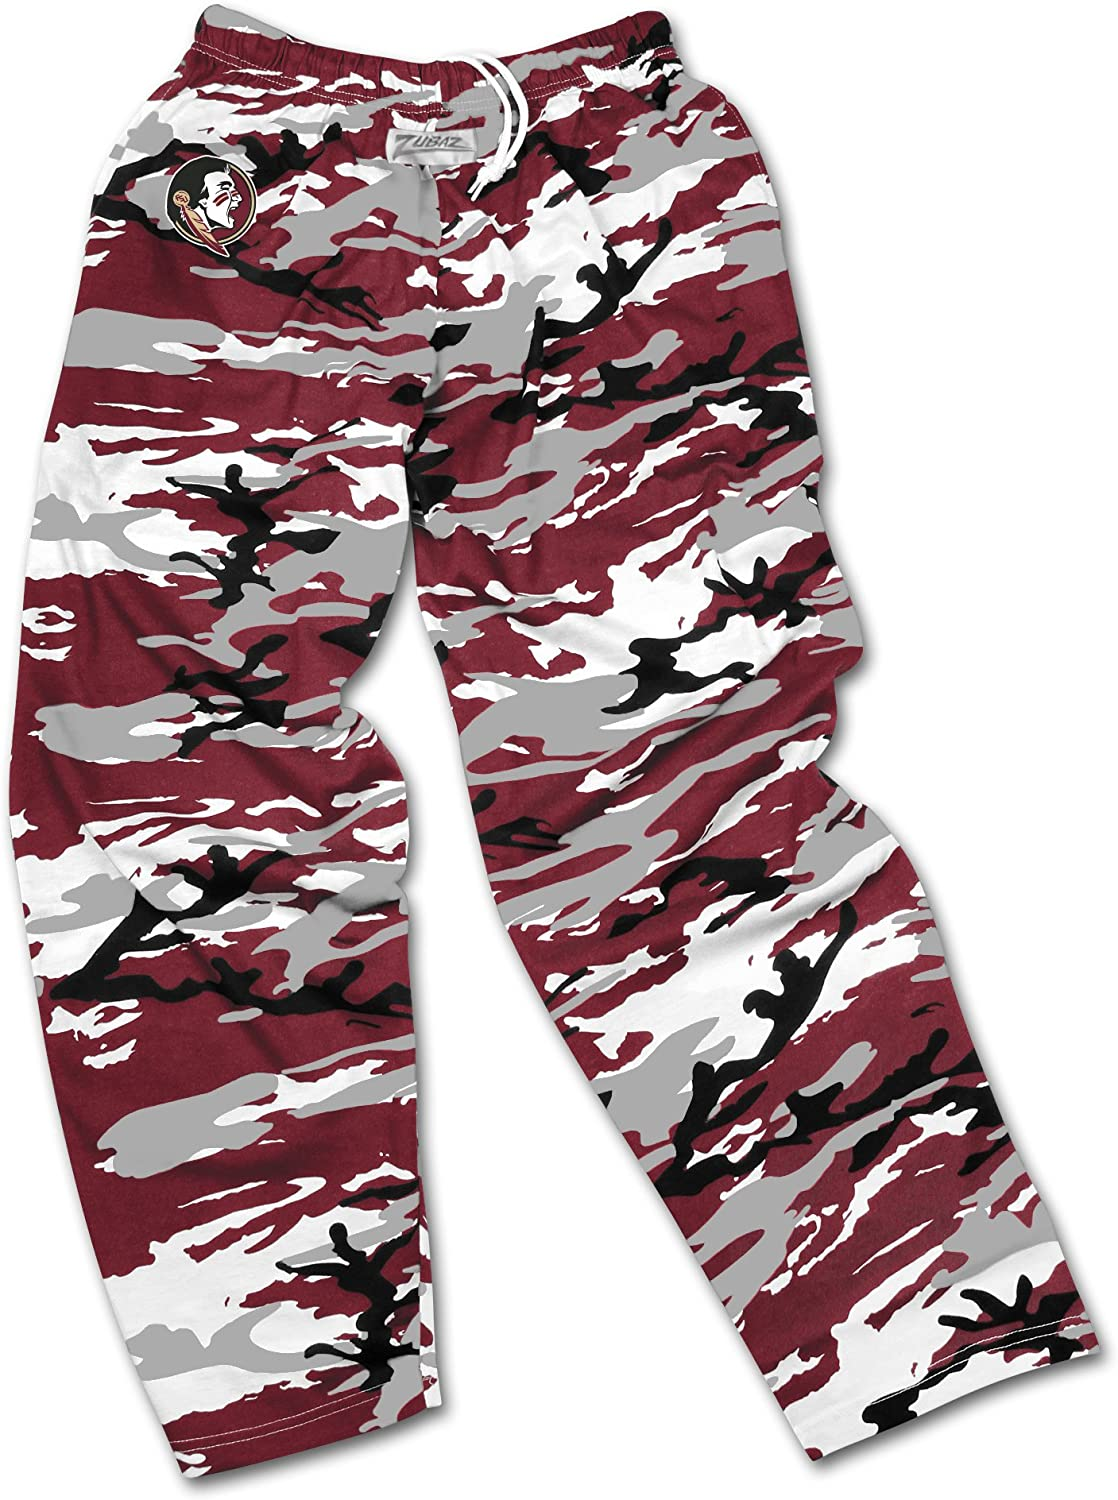 Team Color Zubaz Officially Licensed Mens NCAA Mens Casual Active Pants